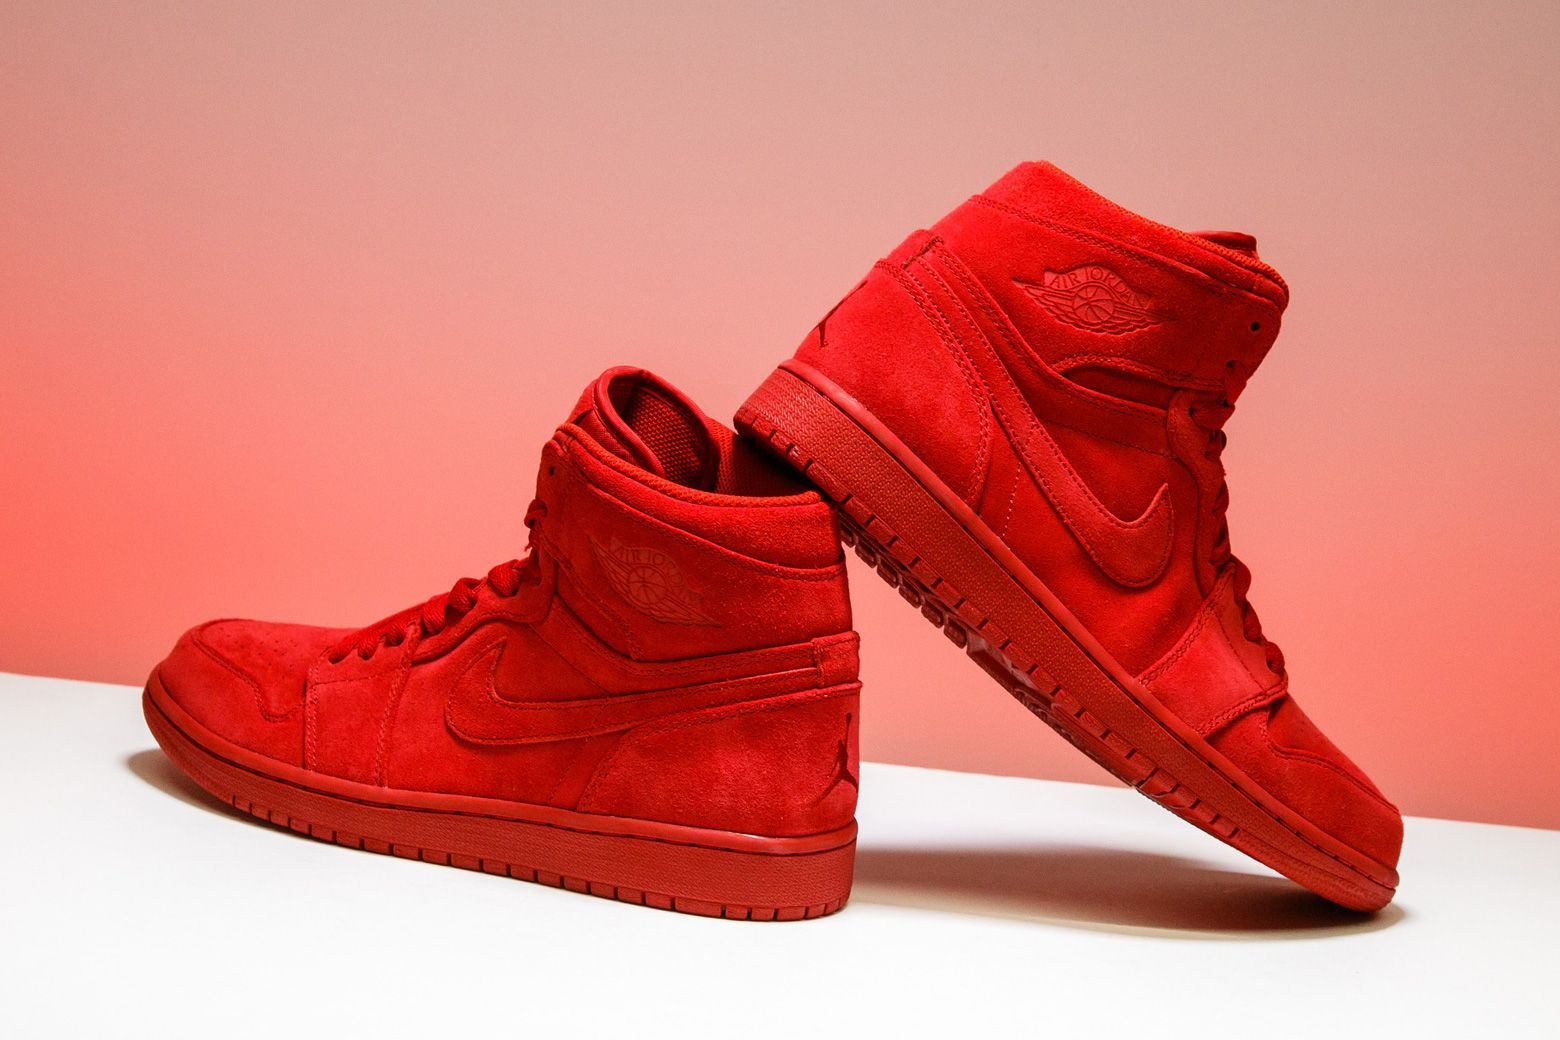 b1e1b5a7c46a The Air Jordan 1 Retro High receives a tonal red makeover for this